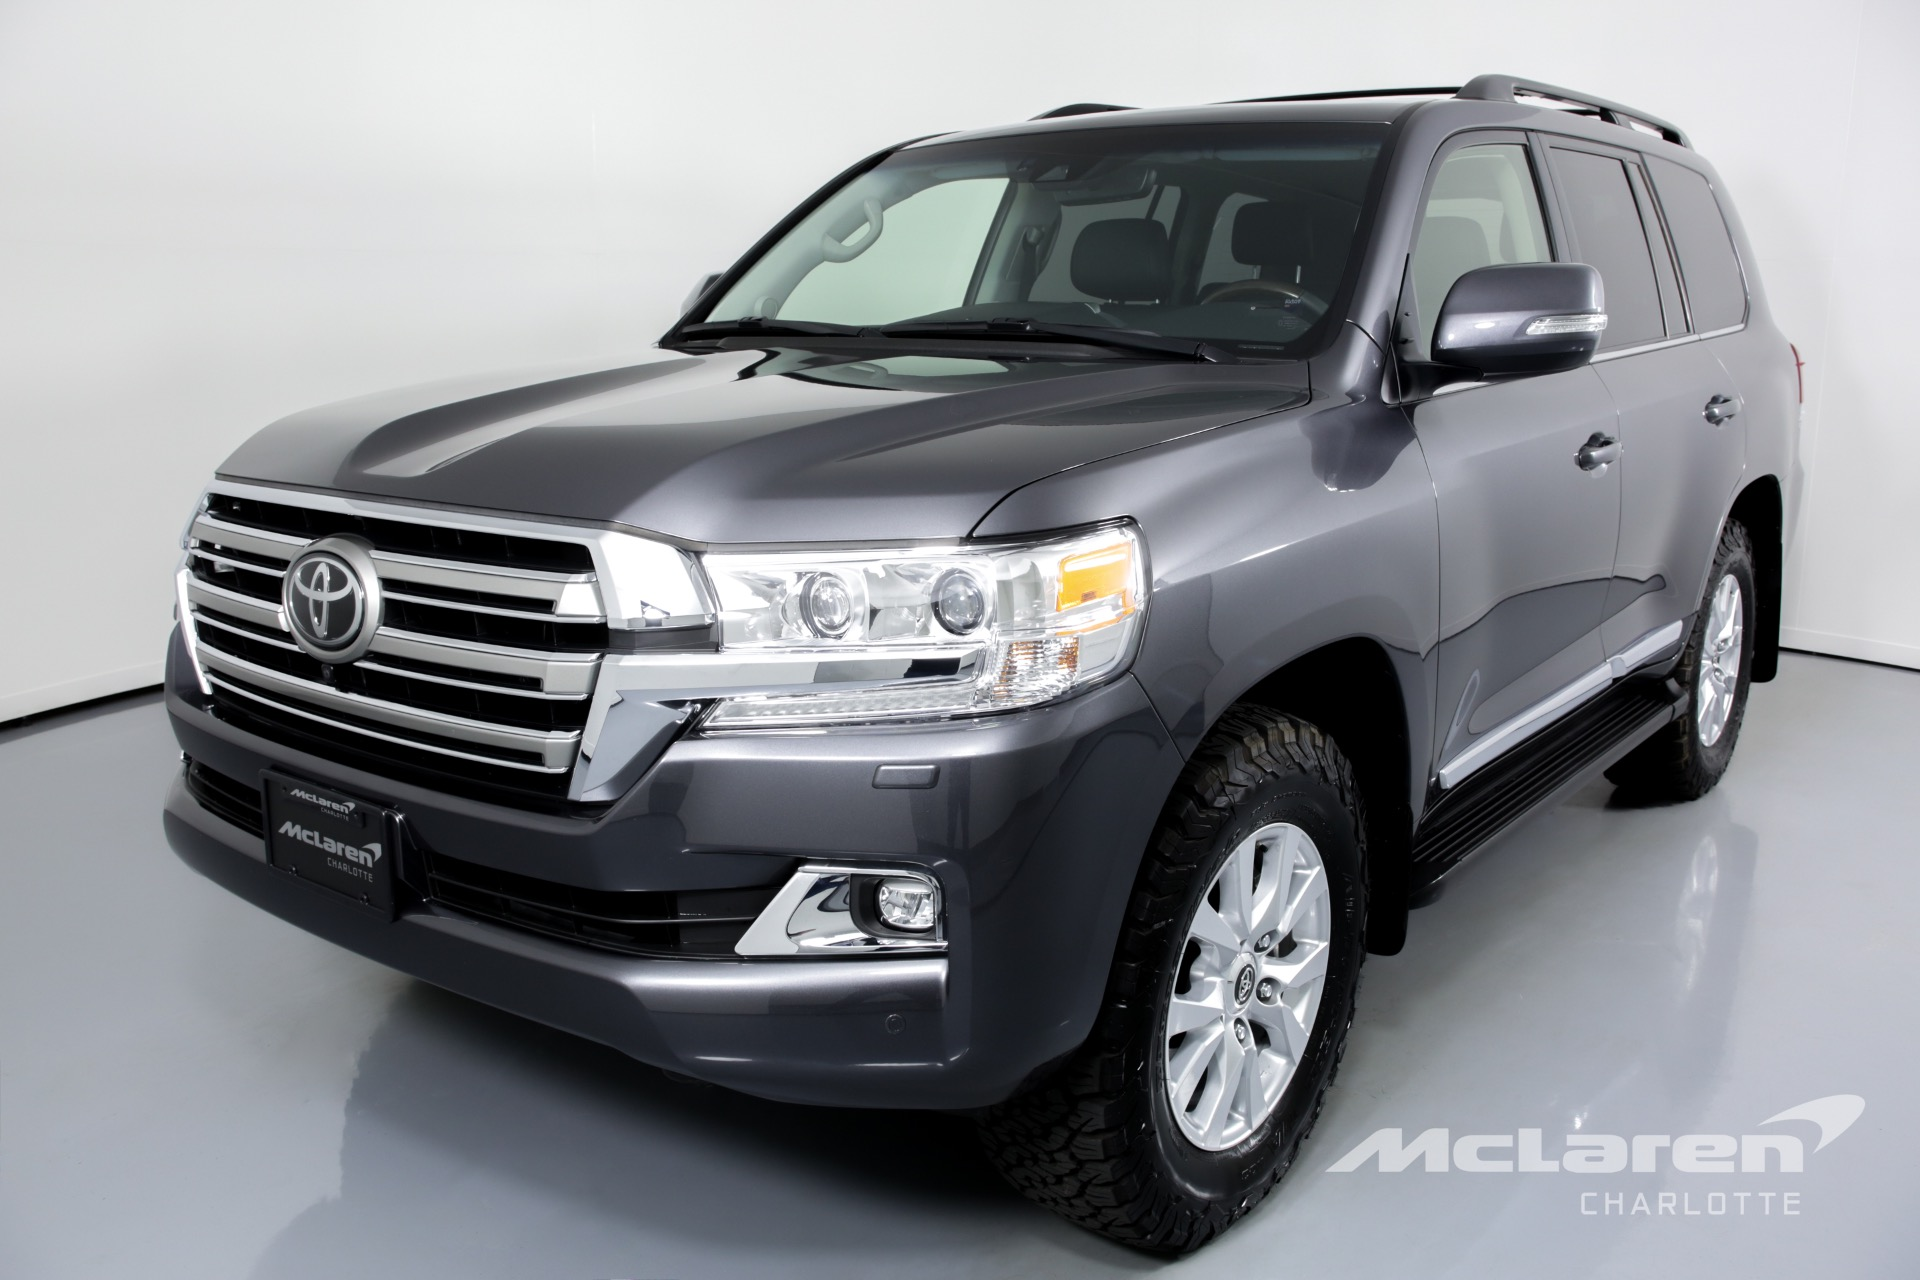 used 2019 toyota land cruiser for sale   77 456